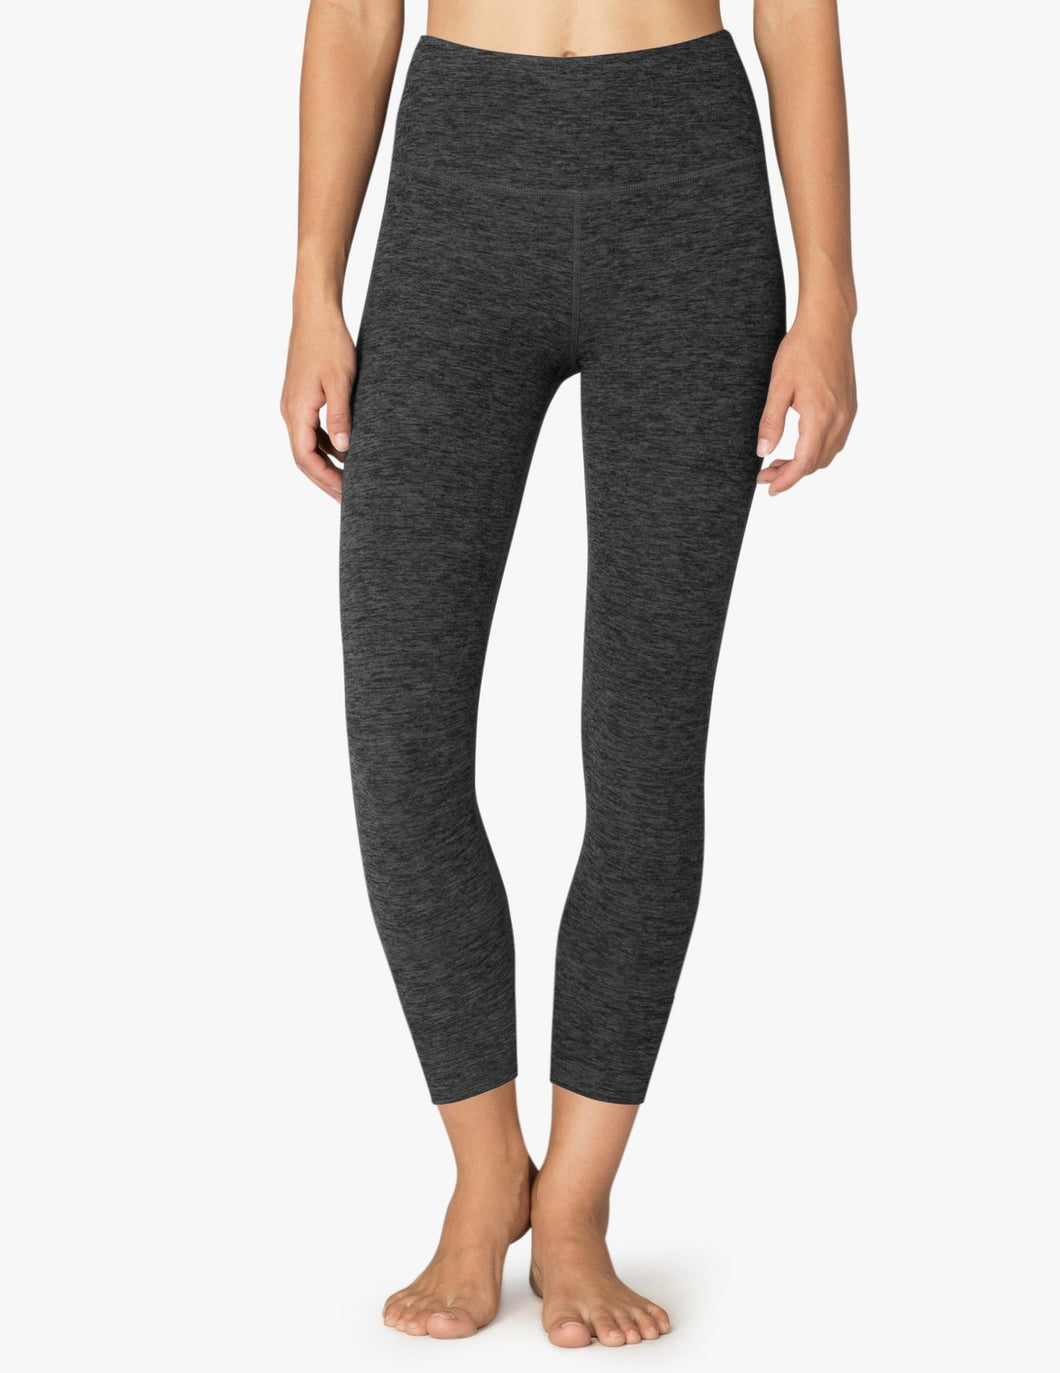 BEYOND YOGA SPACEDYE CAUGHT IN THE MIDI HIGH WAISTED LEGGING - BLACK/CHARCOAL